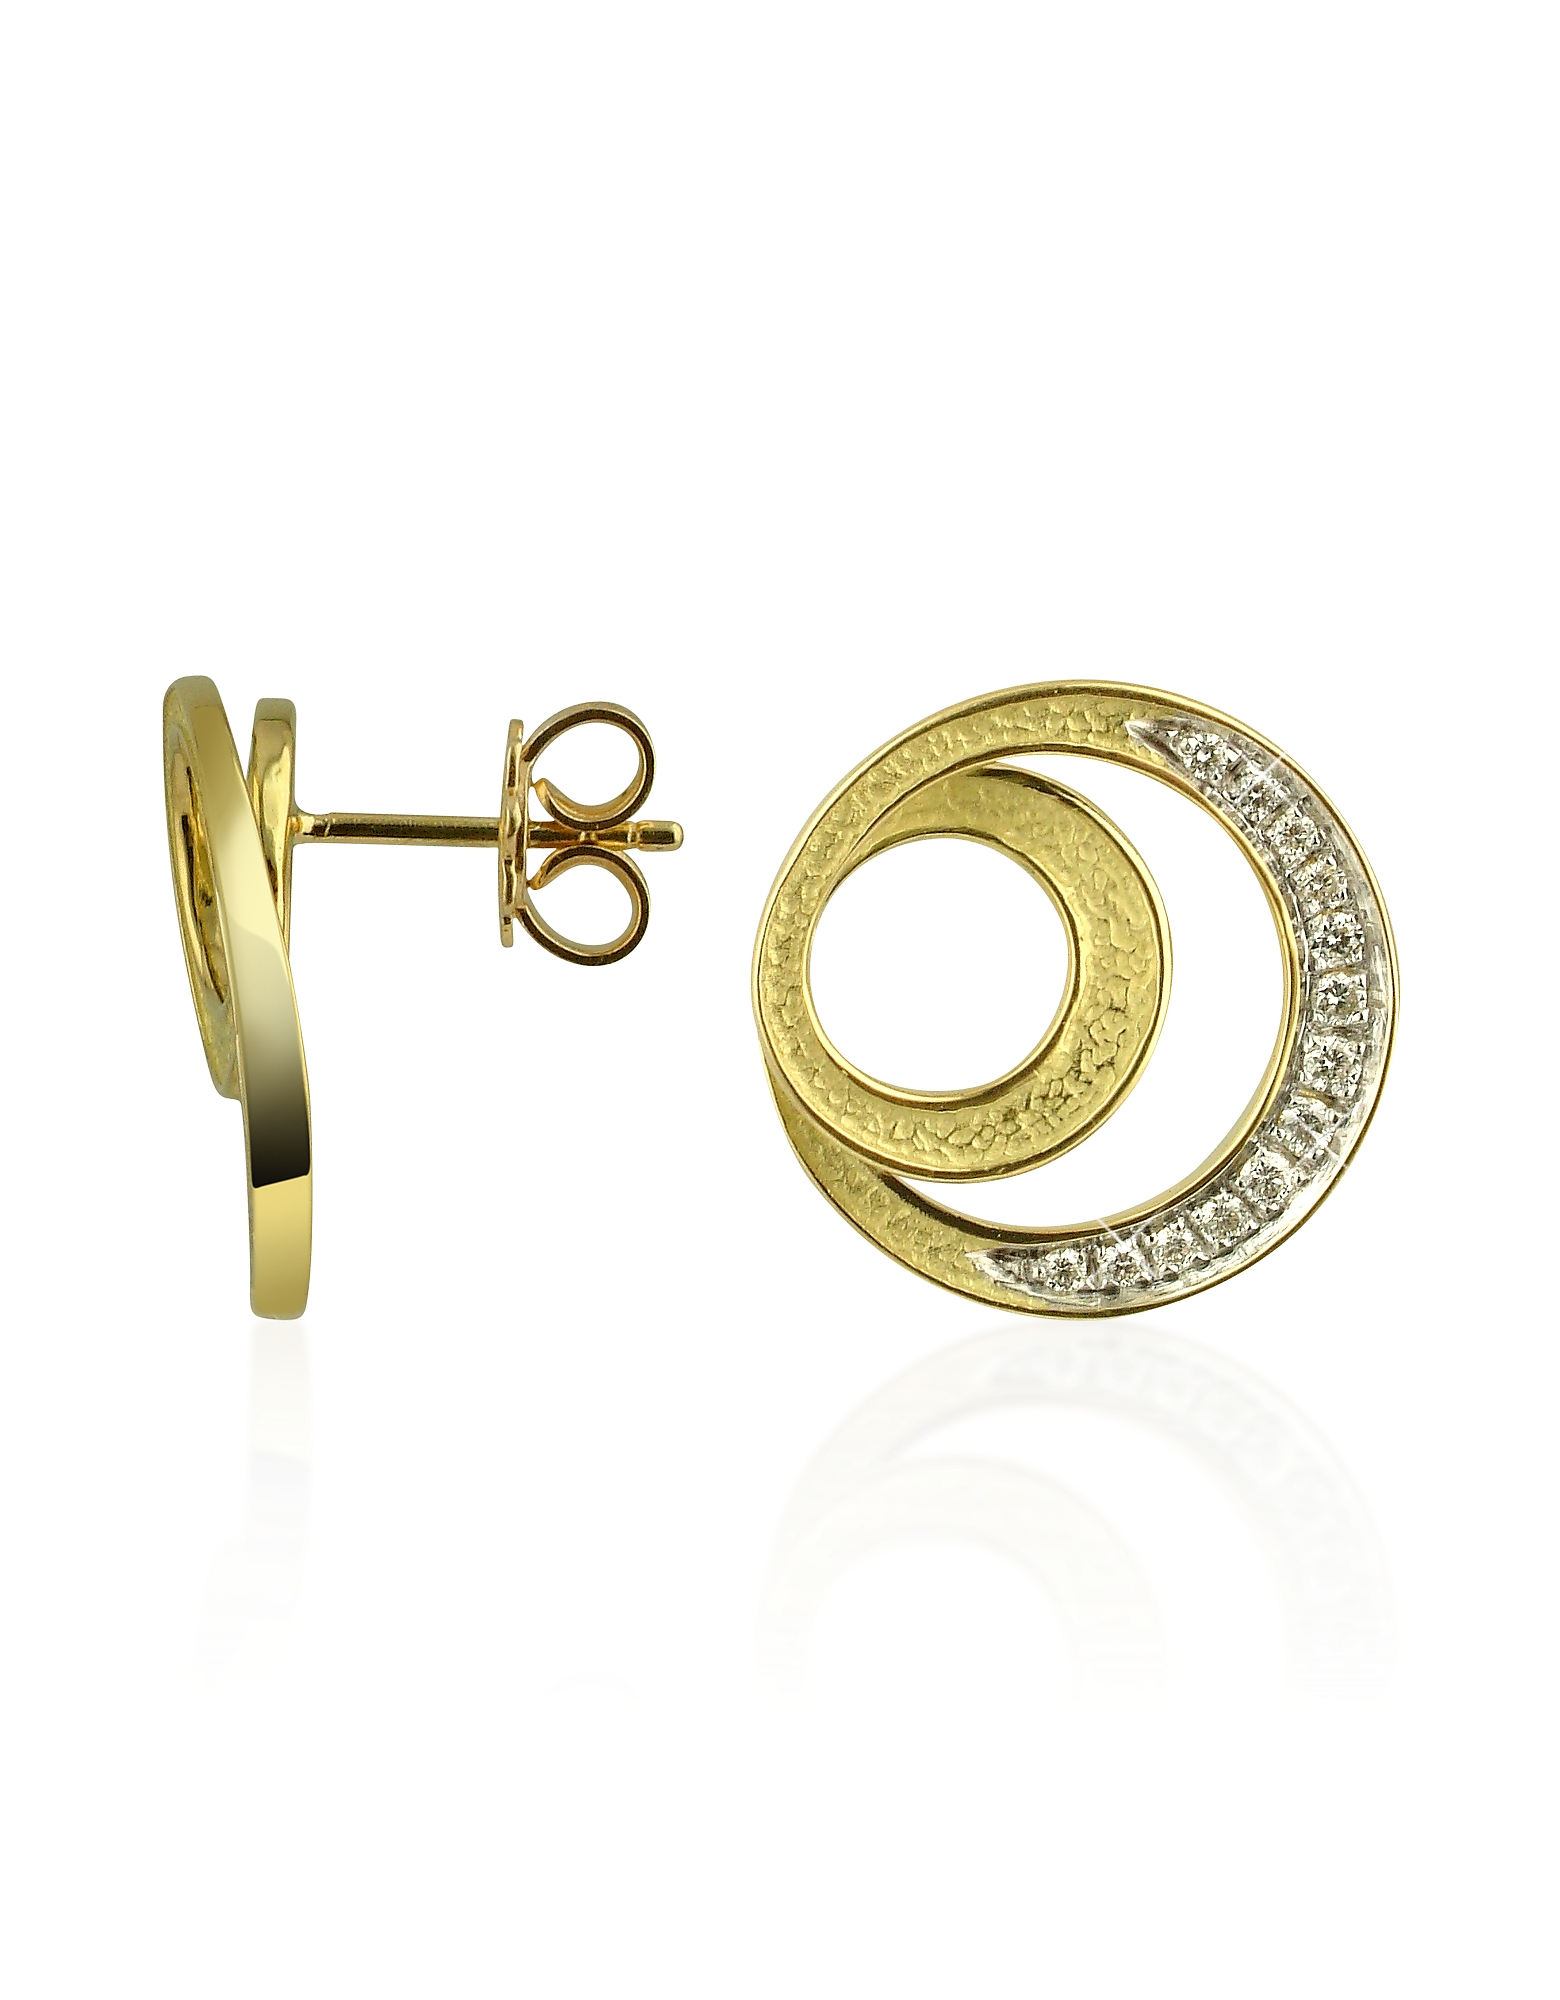 Torrini Designer Earrings, Infinity 18K Yellow Gold Diamond Earrings